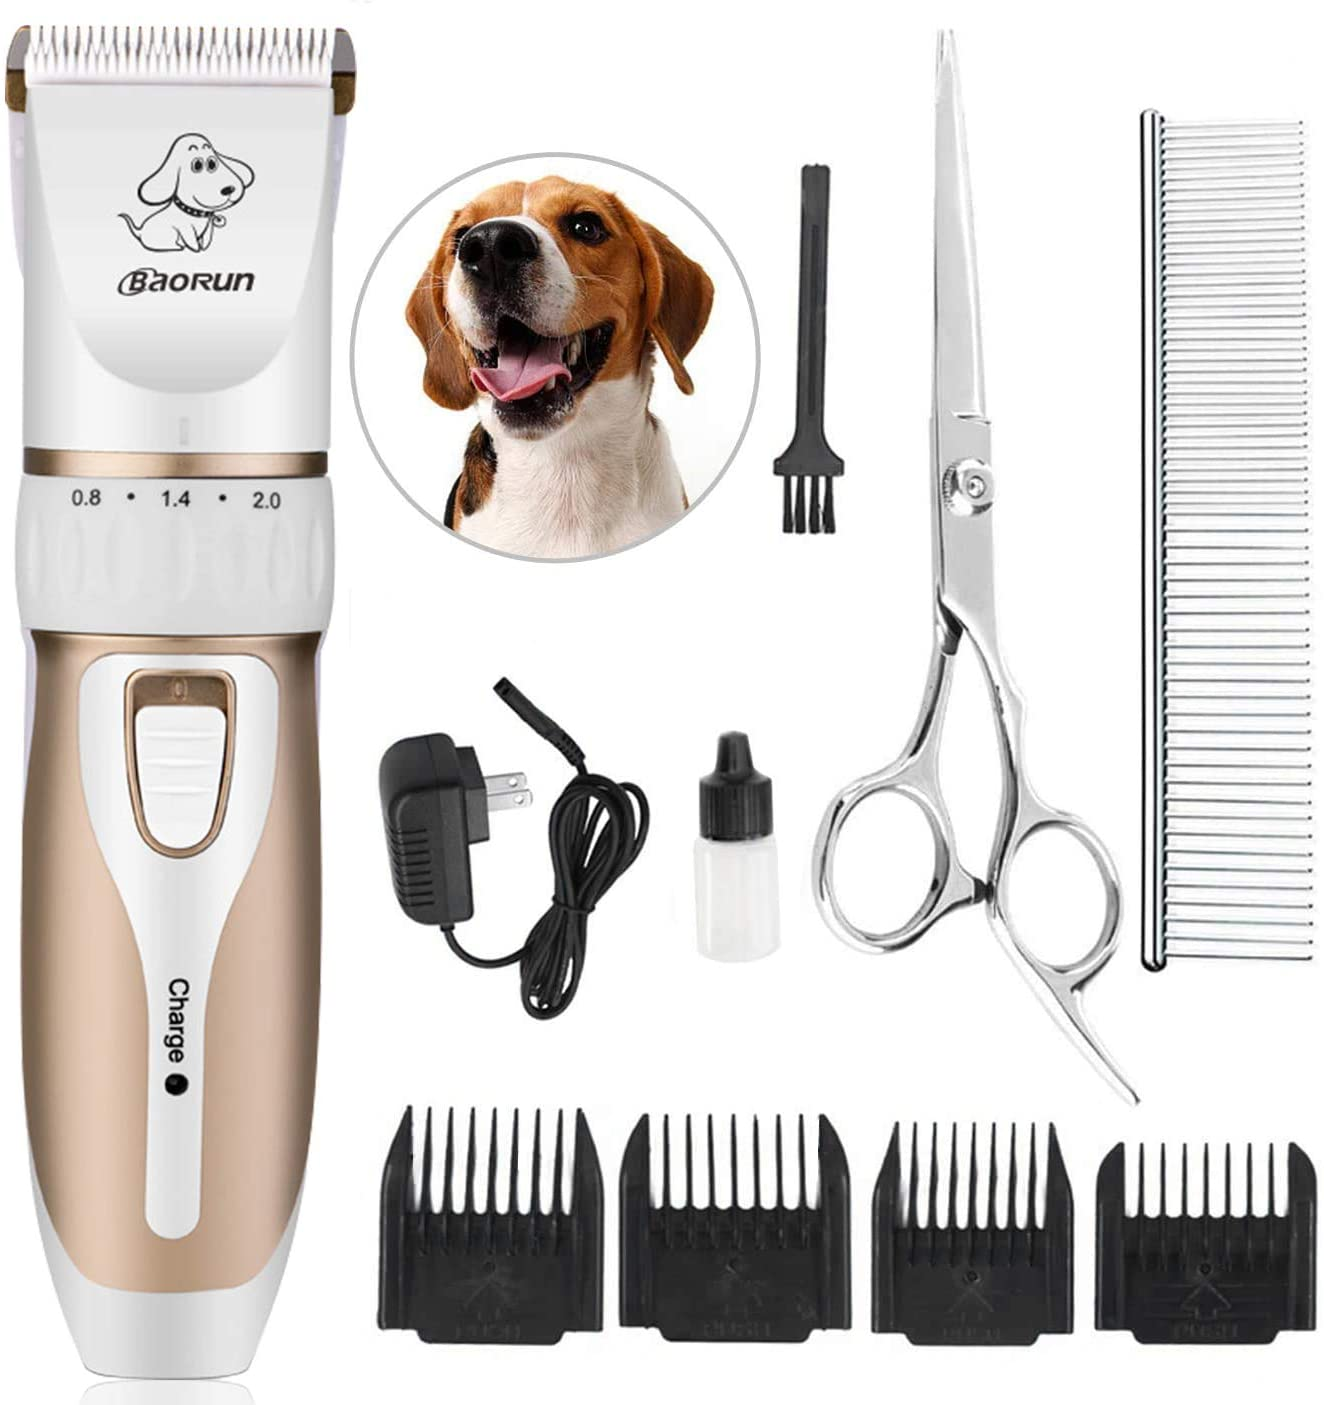 Maxshop Pet Grooming Clippers, Professional Quiet Rechargeable Cordless Pet Hair Clippers with Comb Guides Scissors Stainless Steel Blades Kit for Dogs Cats,Pets Long Short Hair Shave